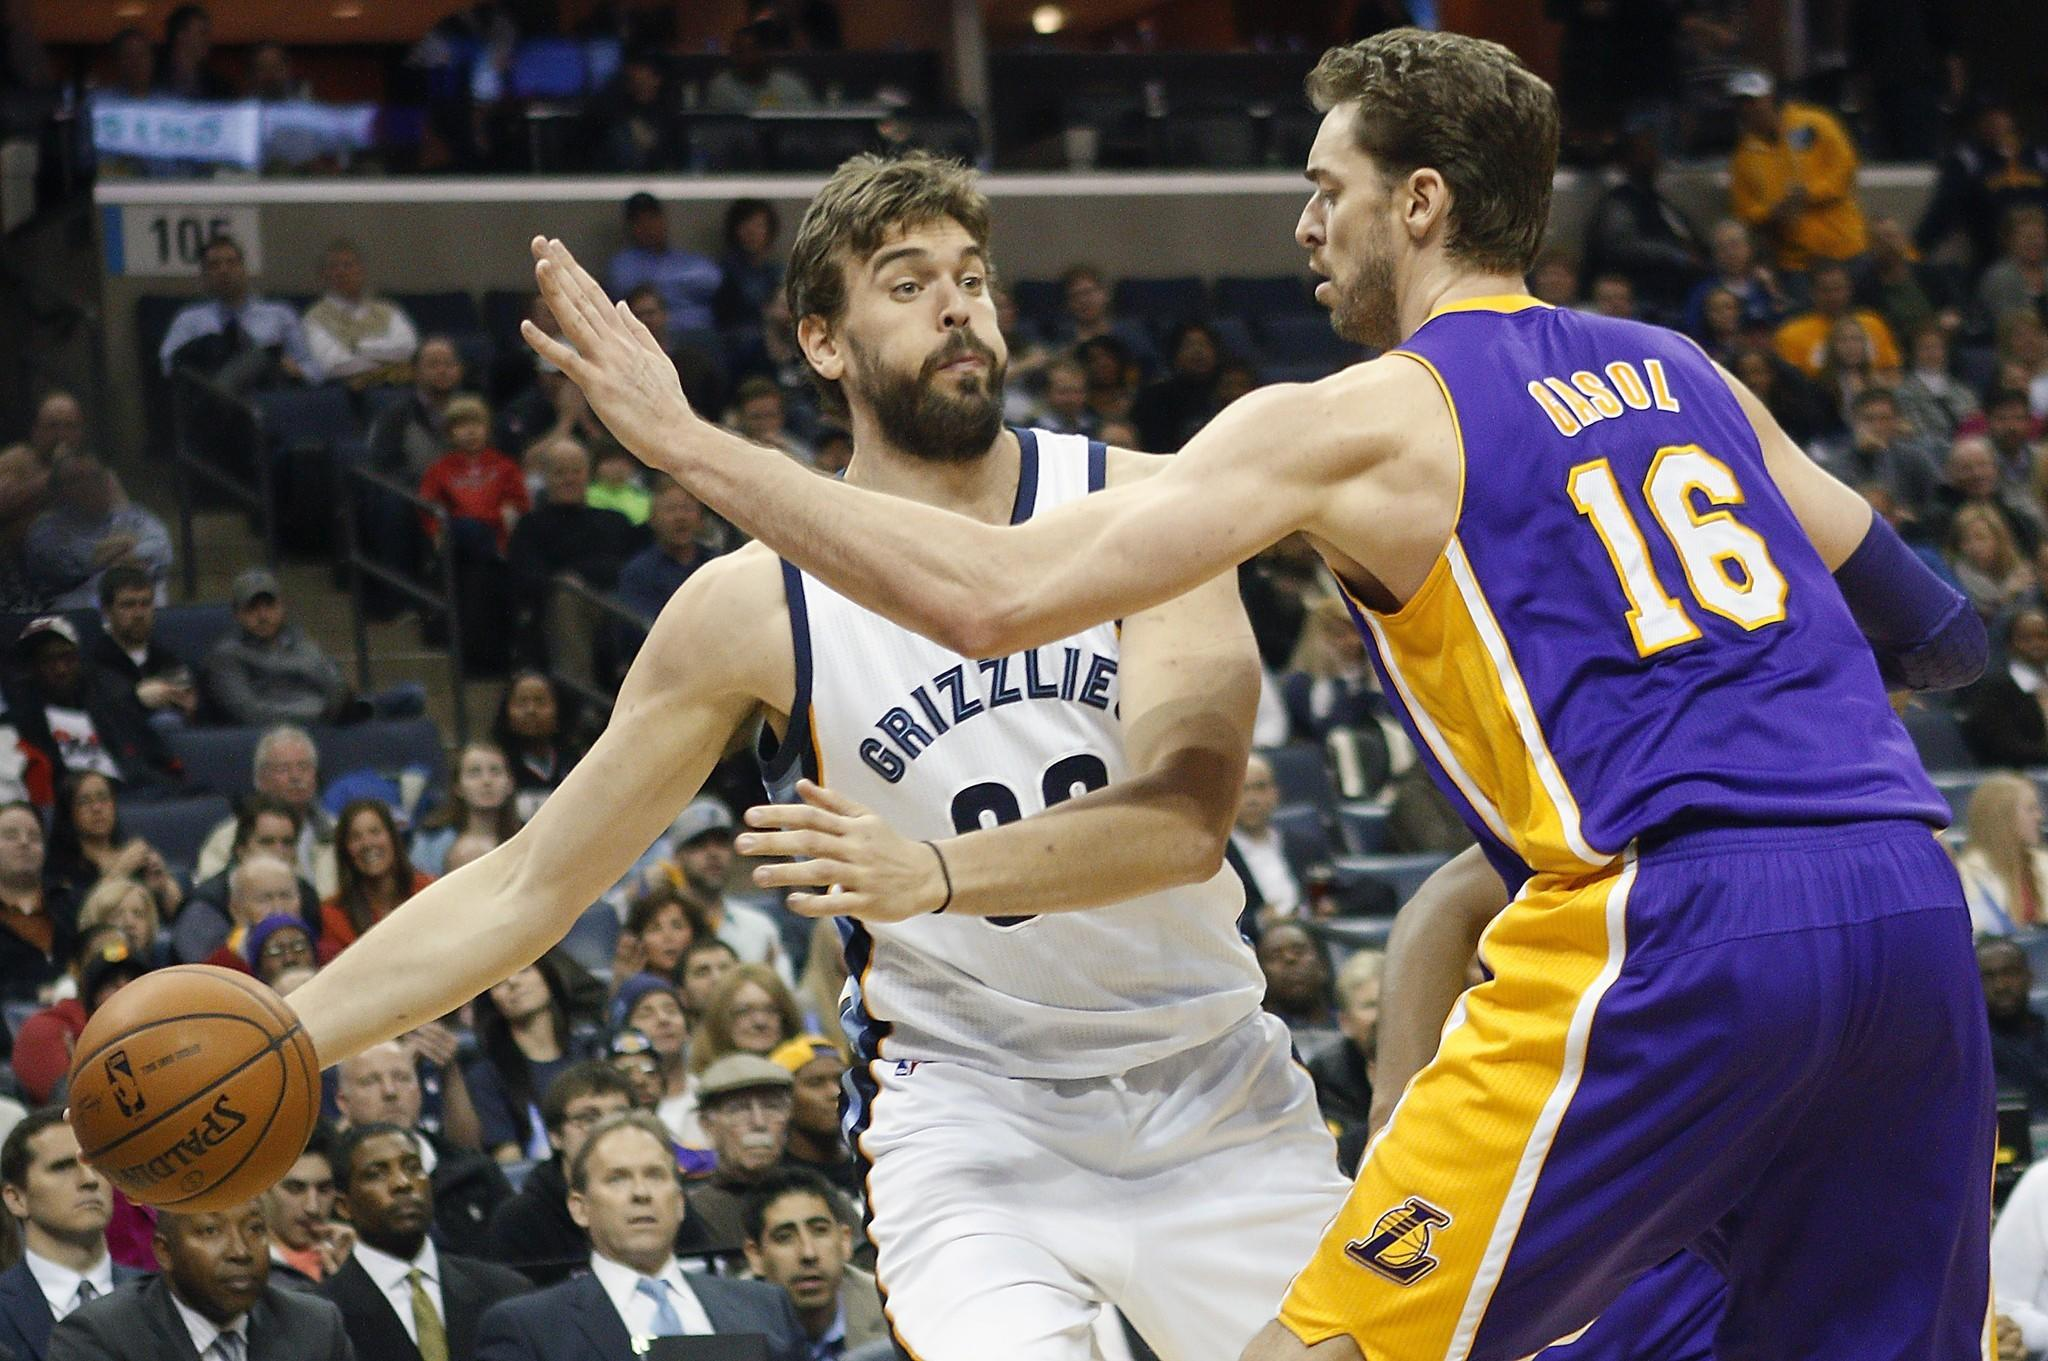 Grizzlies center Marc Gasol tries to pass around his brother, Lakers forward Pau Gasol. While the Grizzlies are still alive in the playoff race, the Lakers have been eliminated.